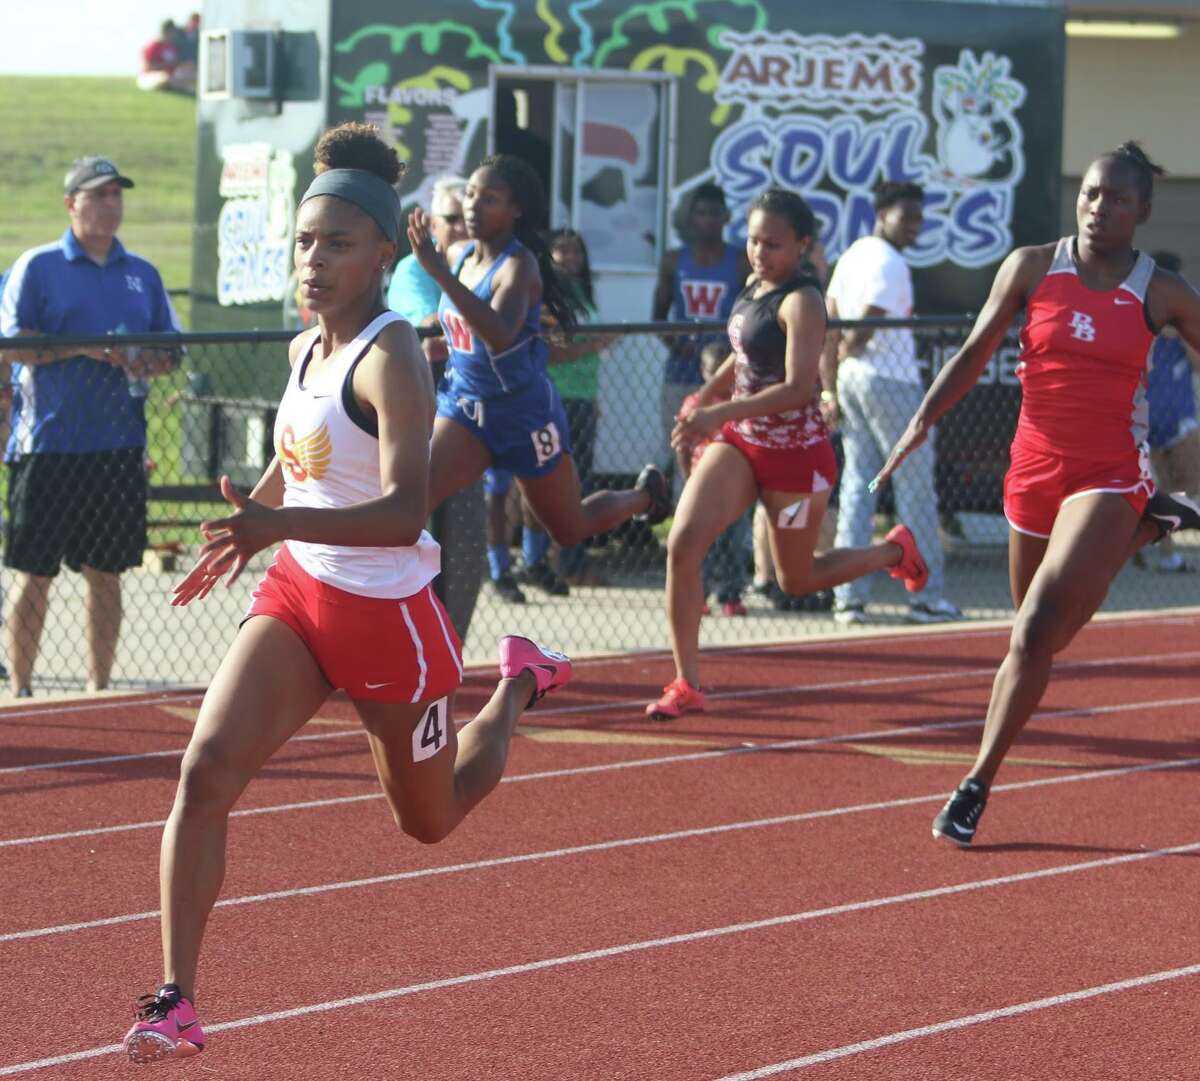 Stafford senior Cheyenne Hill-Johnson qualified for the UIL Class 4A state track and field championships in the 100-meter dash and 200-meter dash. The Spartans will be represented in seven events in Austin.